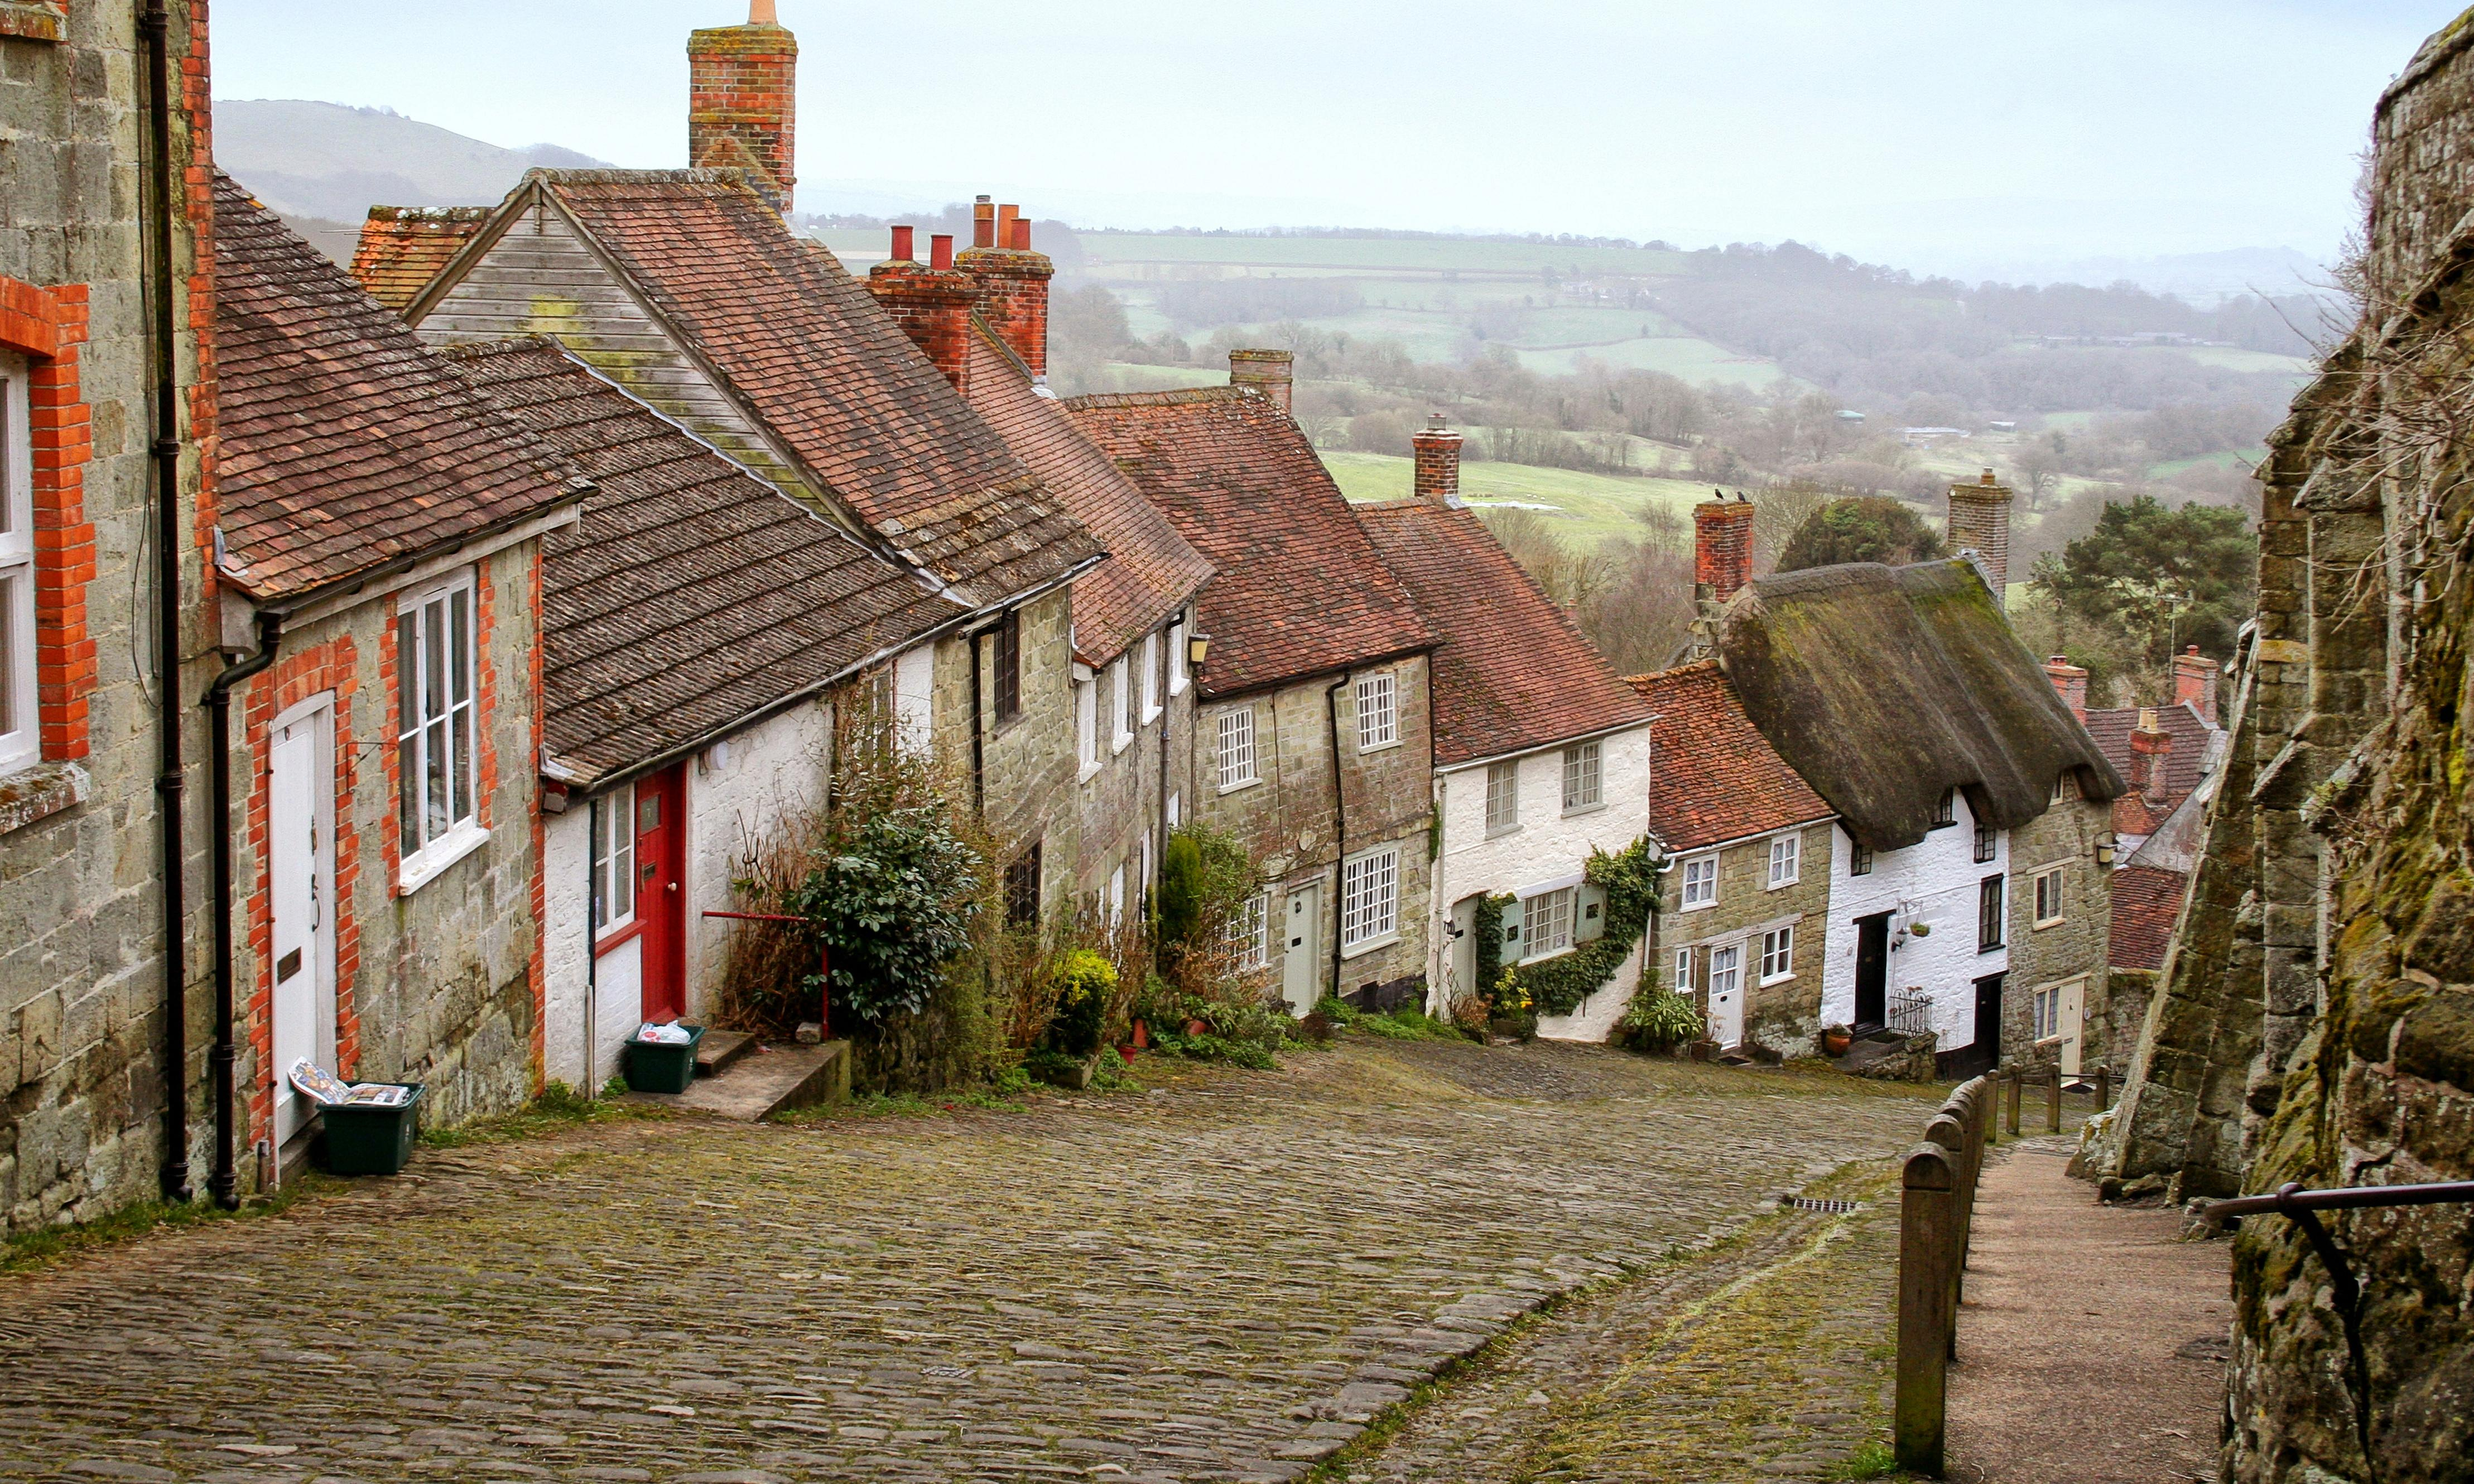 Let's move to Shaftesbury, Dorset: an oasis of calm in these feverish times